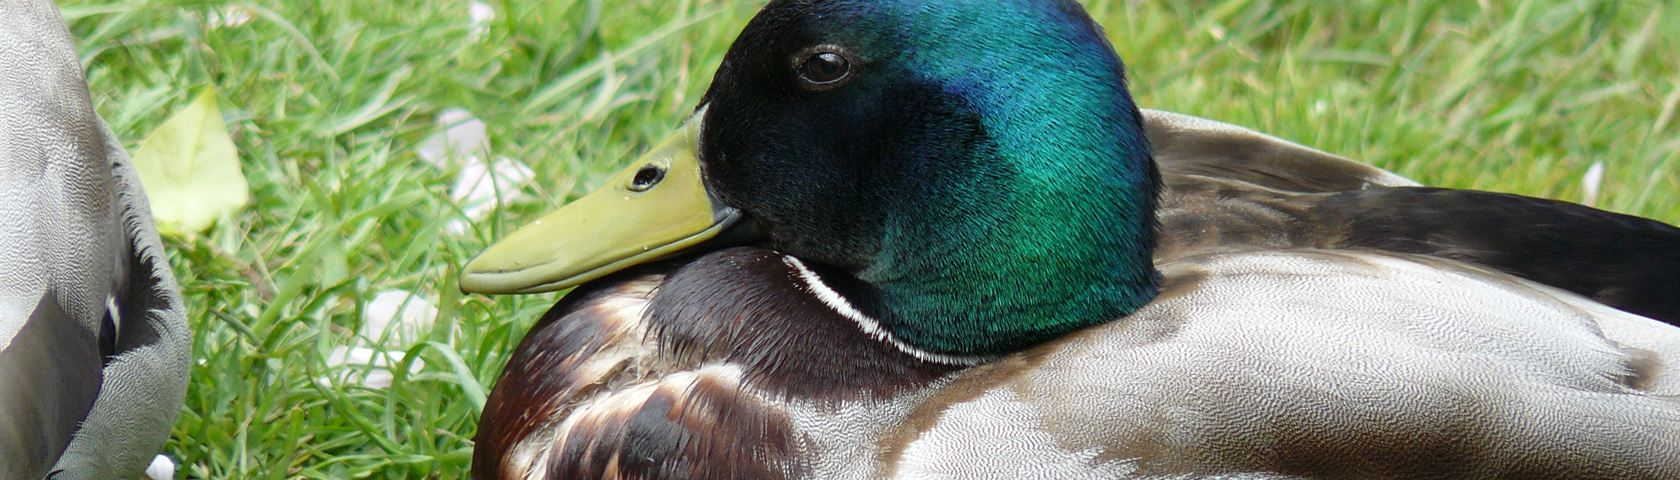 Duck at Rest